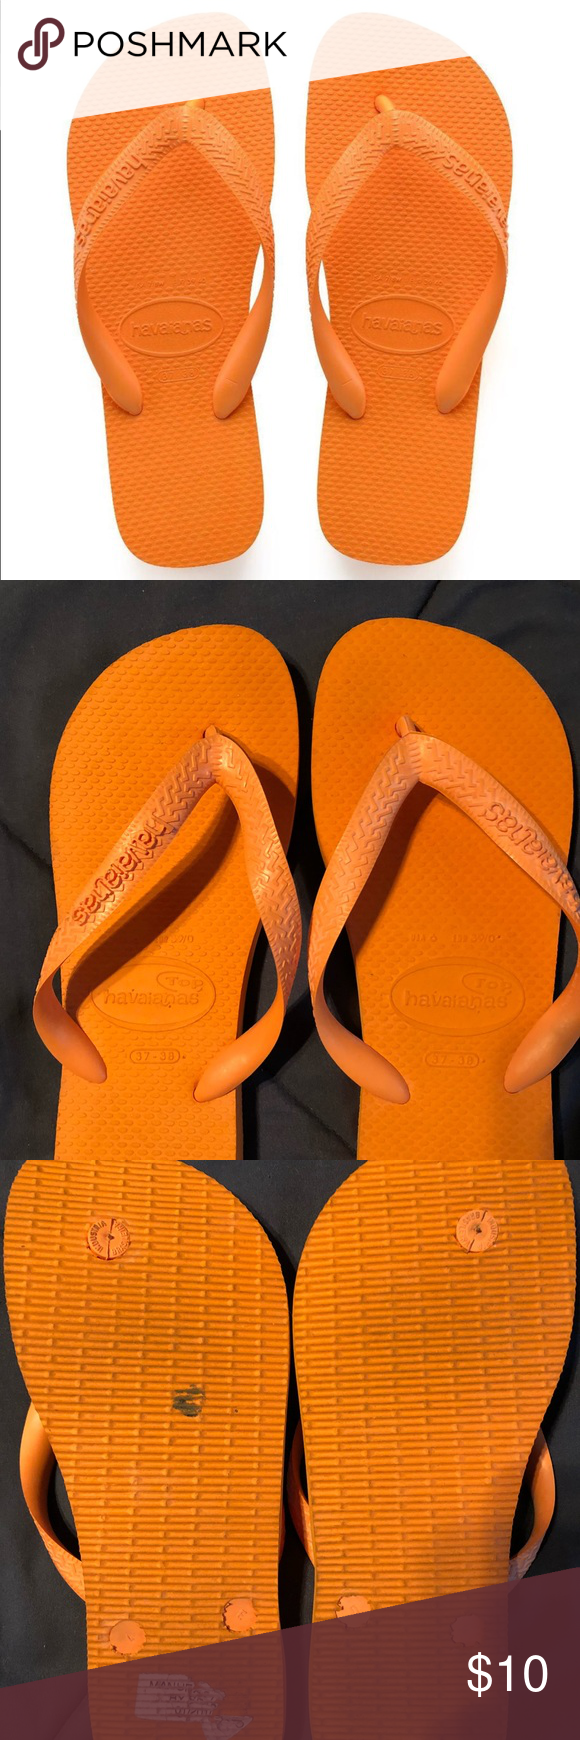 cb1b4348ac98 Women s Havaiana s Flipflops Women s Havaianas size 37-38 (7). Great  condition Havaianas Shoes